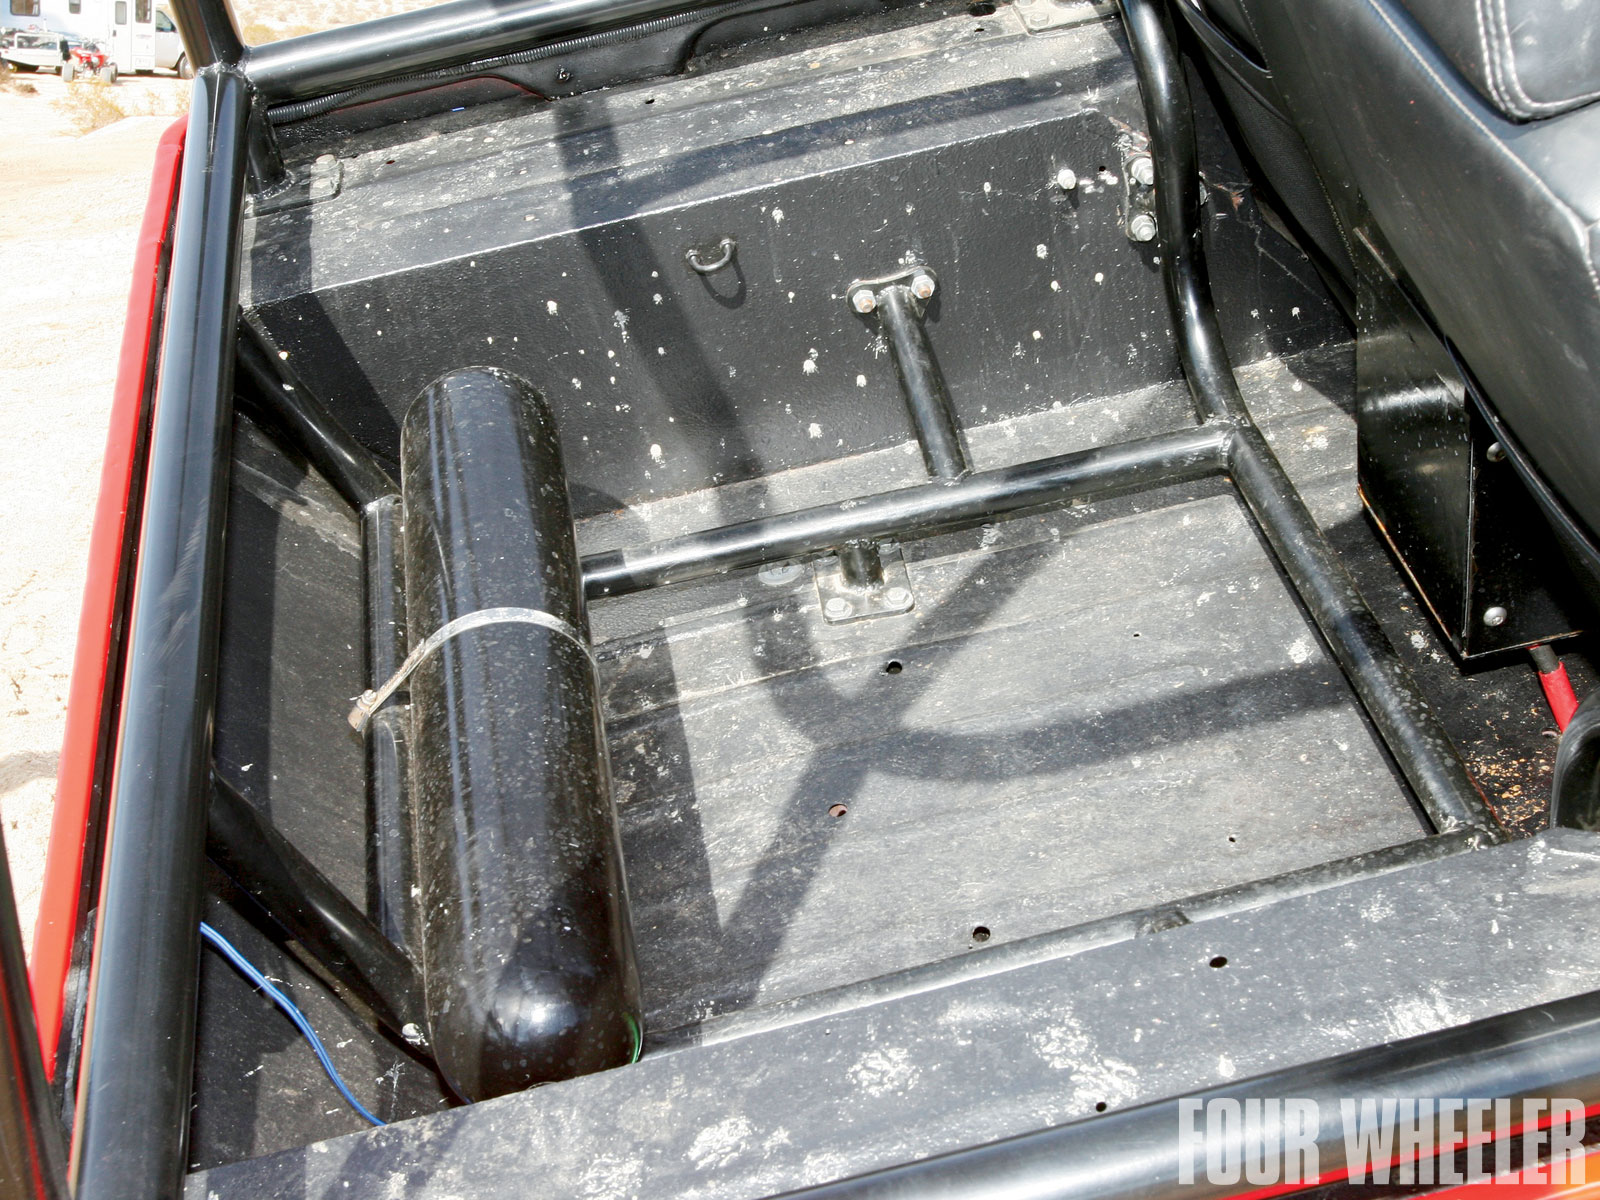 "The cargo area has plenty of room for gear, even with the full rollcage. Speaking of the rollcage, it's made from 2-inch-diameter, 0.095-inch-wall tubing. Hilton made the 'cage to his specs. ""I was tired of hitting my head on stock cages, so I built mine a bit higher to fit me. The 'cage is connected to the frame in six places, but it is bolted through the tub to the frame so it can be removed from the tub with no cutting,"" Hilton says. When we photographed the rig, the cargo area was mostly empty with the exception of the 2 1/2-gallon Peterbilt auxiliary air tank."